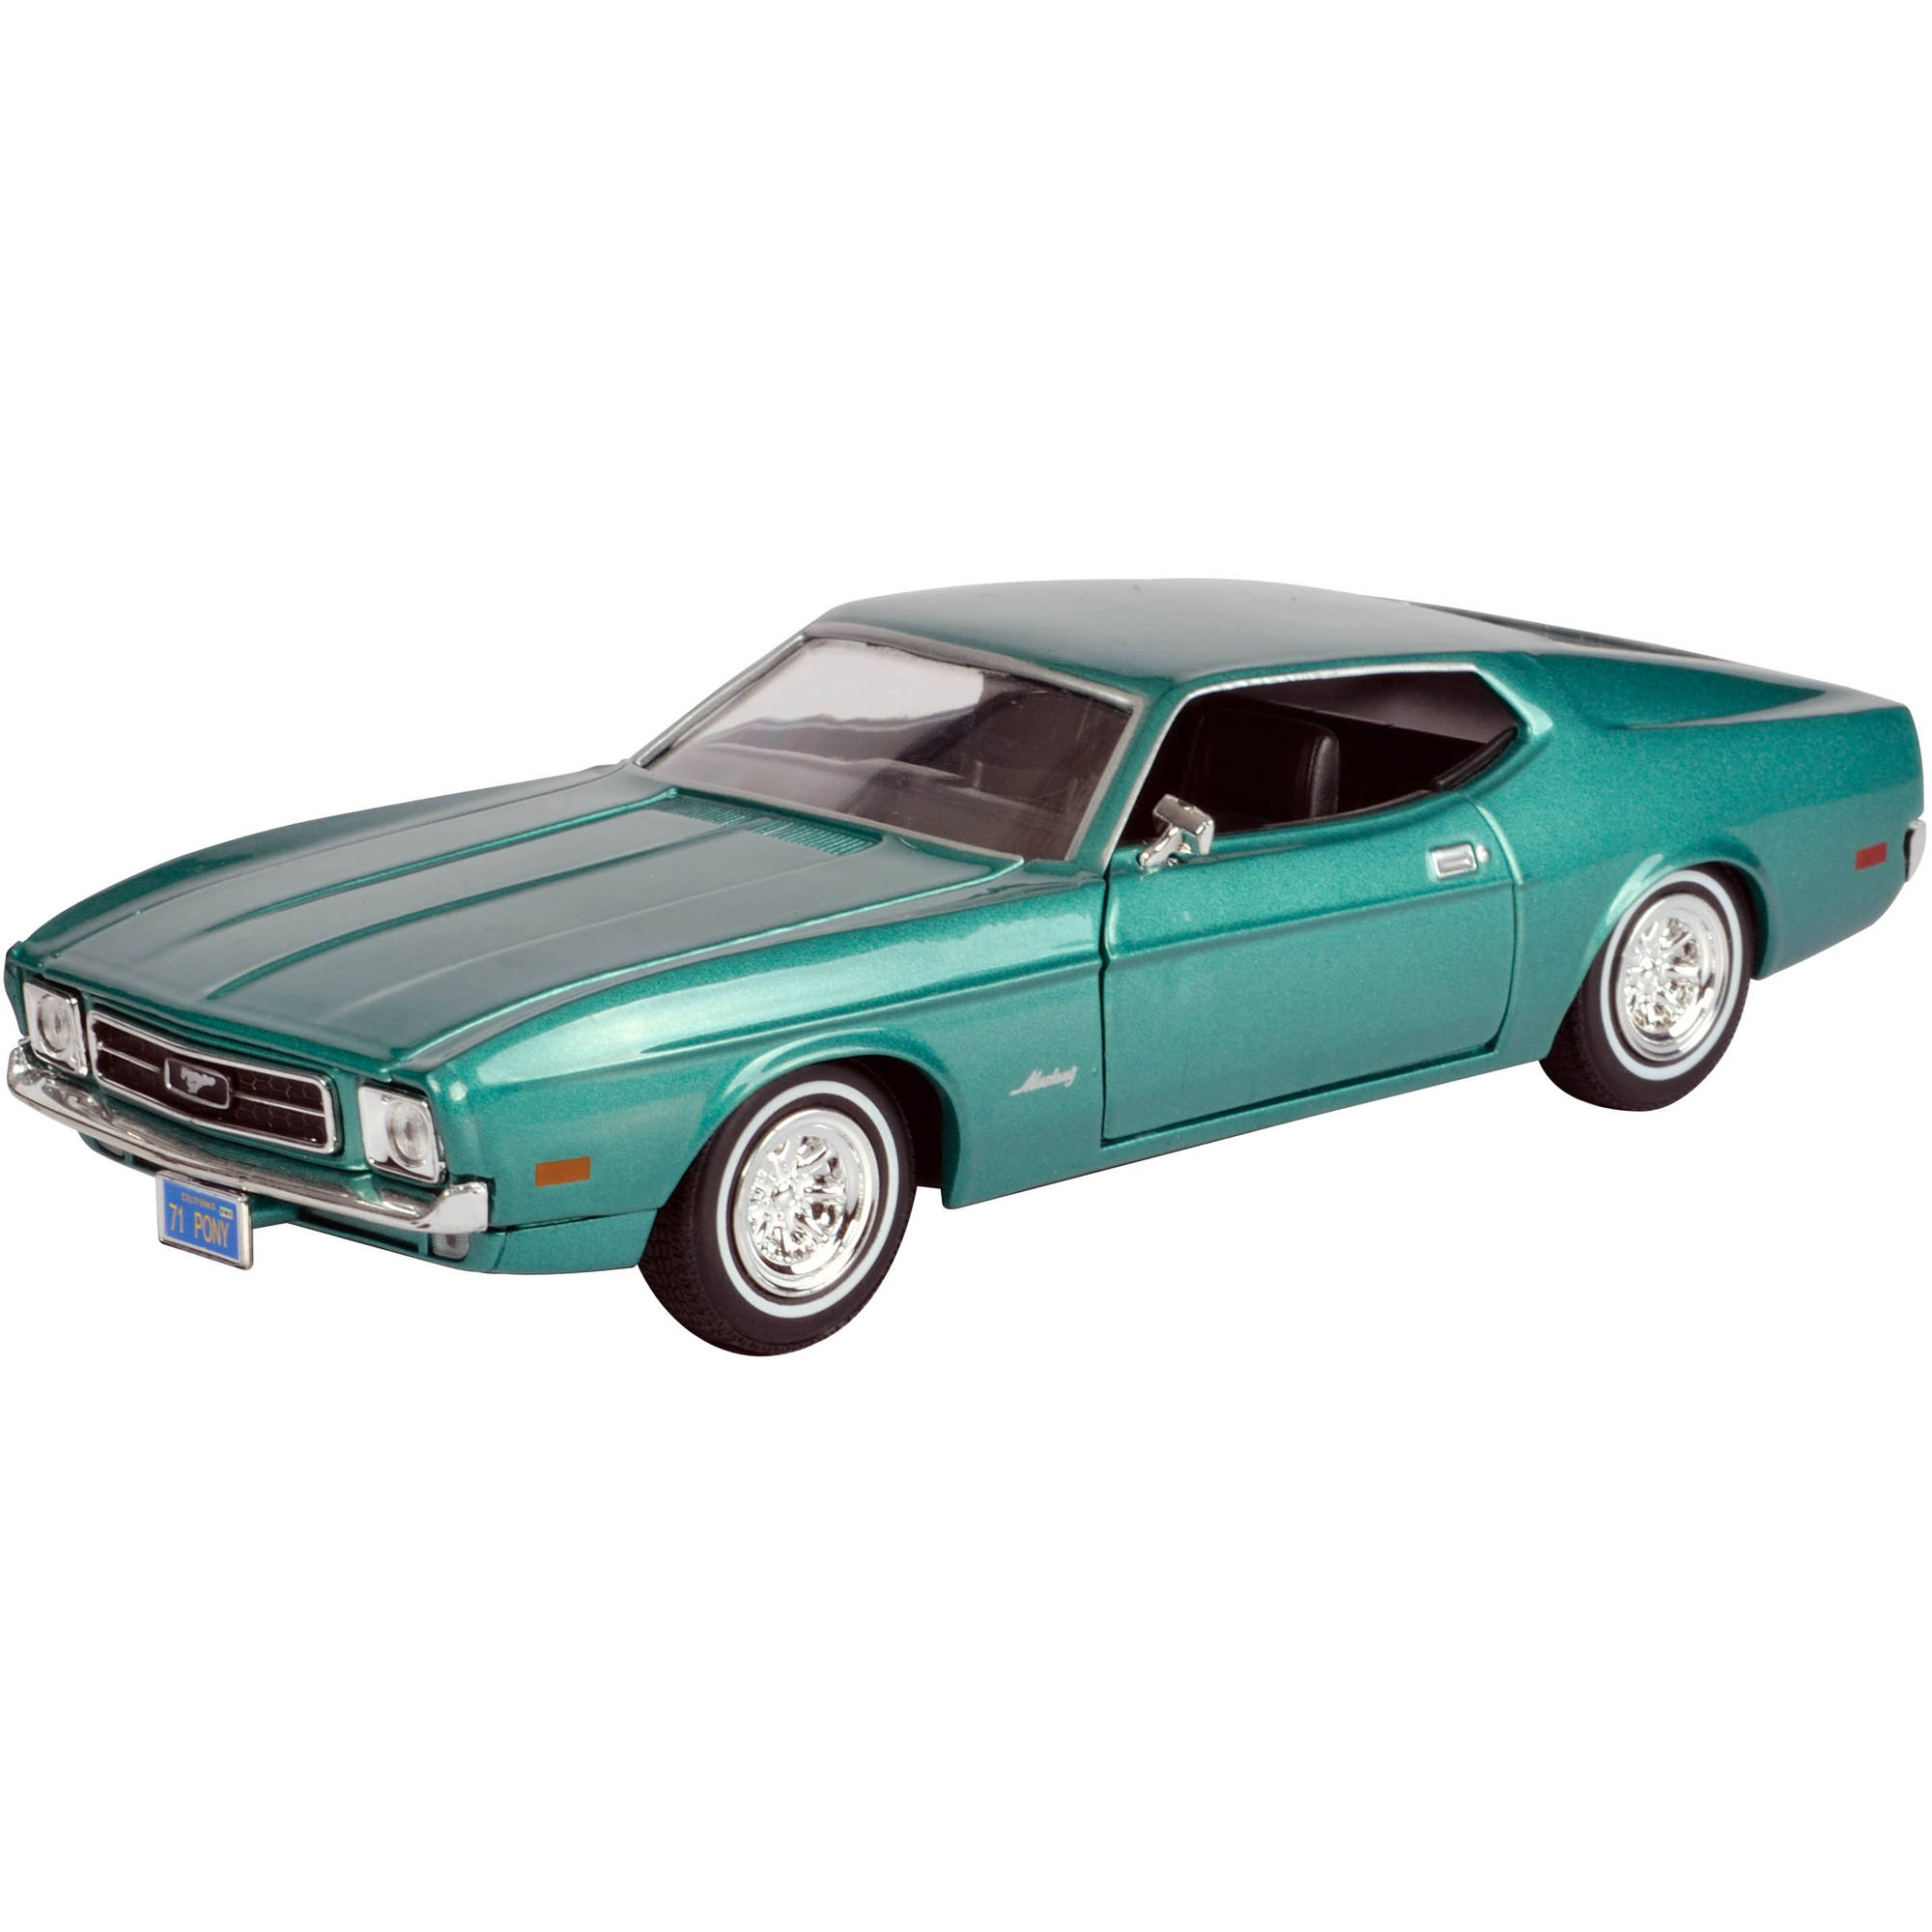 1971 Ford Mustang Sportsroof Model, 1:24 Scale